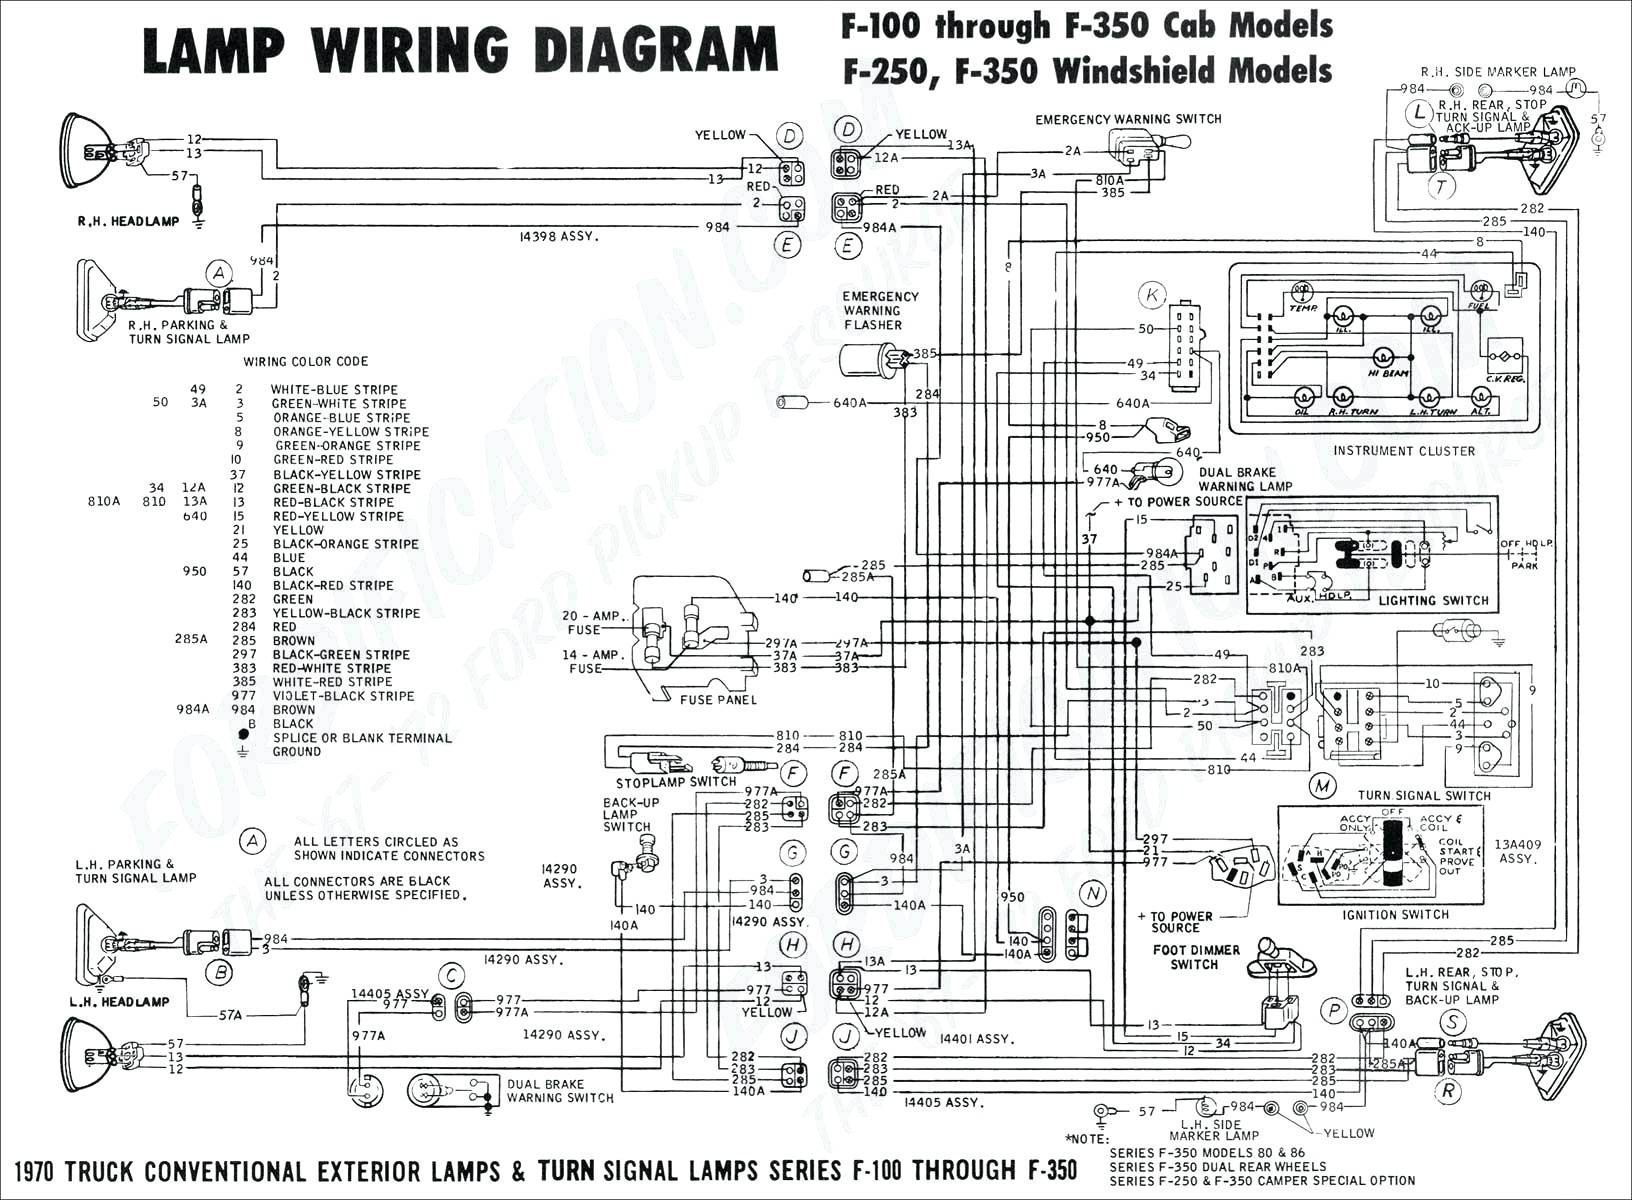 Meyer Snow Plow Wiring Diagram Snow Plow Wiring Diagram Fresh Wiring Diagram for Meyers Snow Plow Of Meyer Snow Plow Wiring Diagram